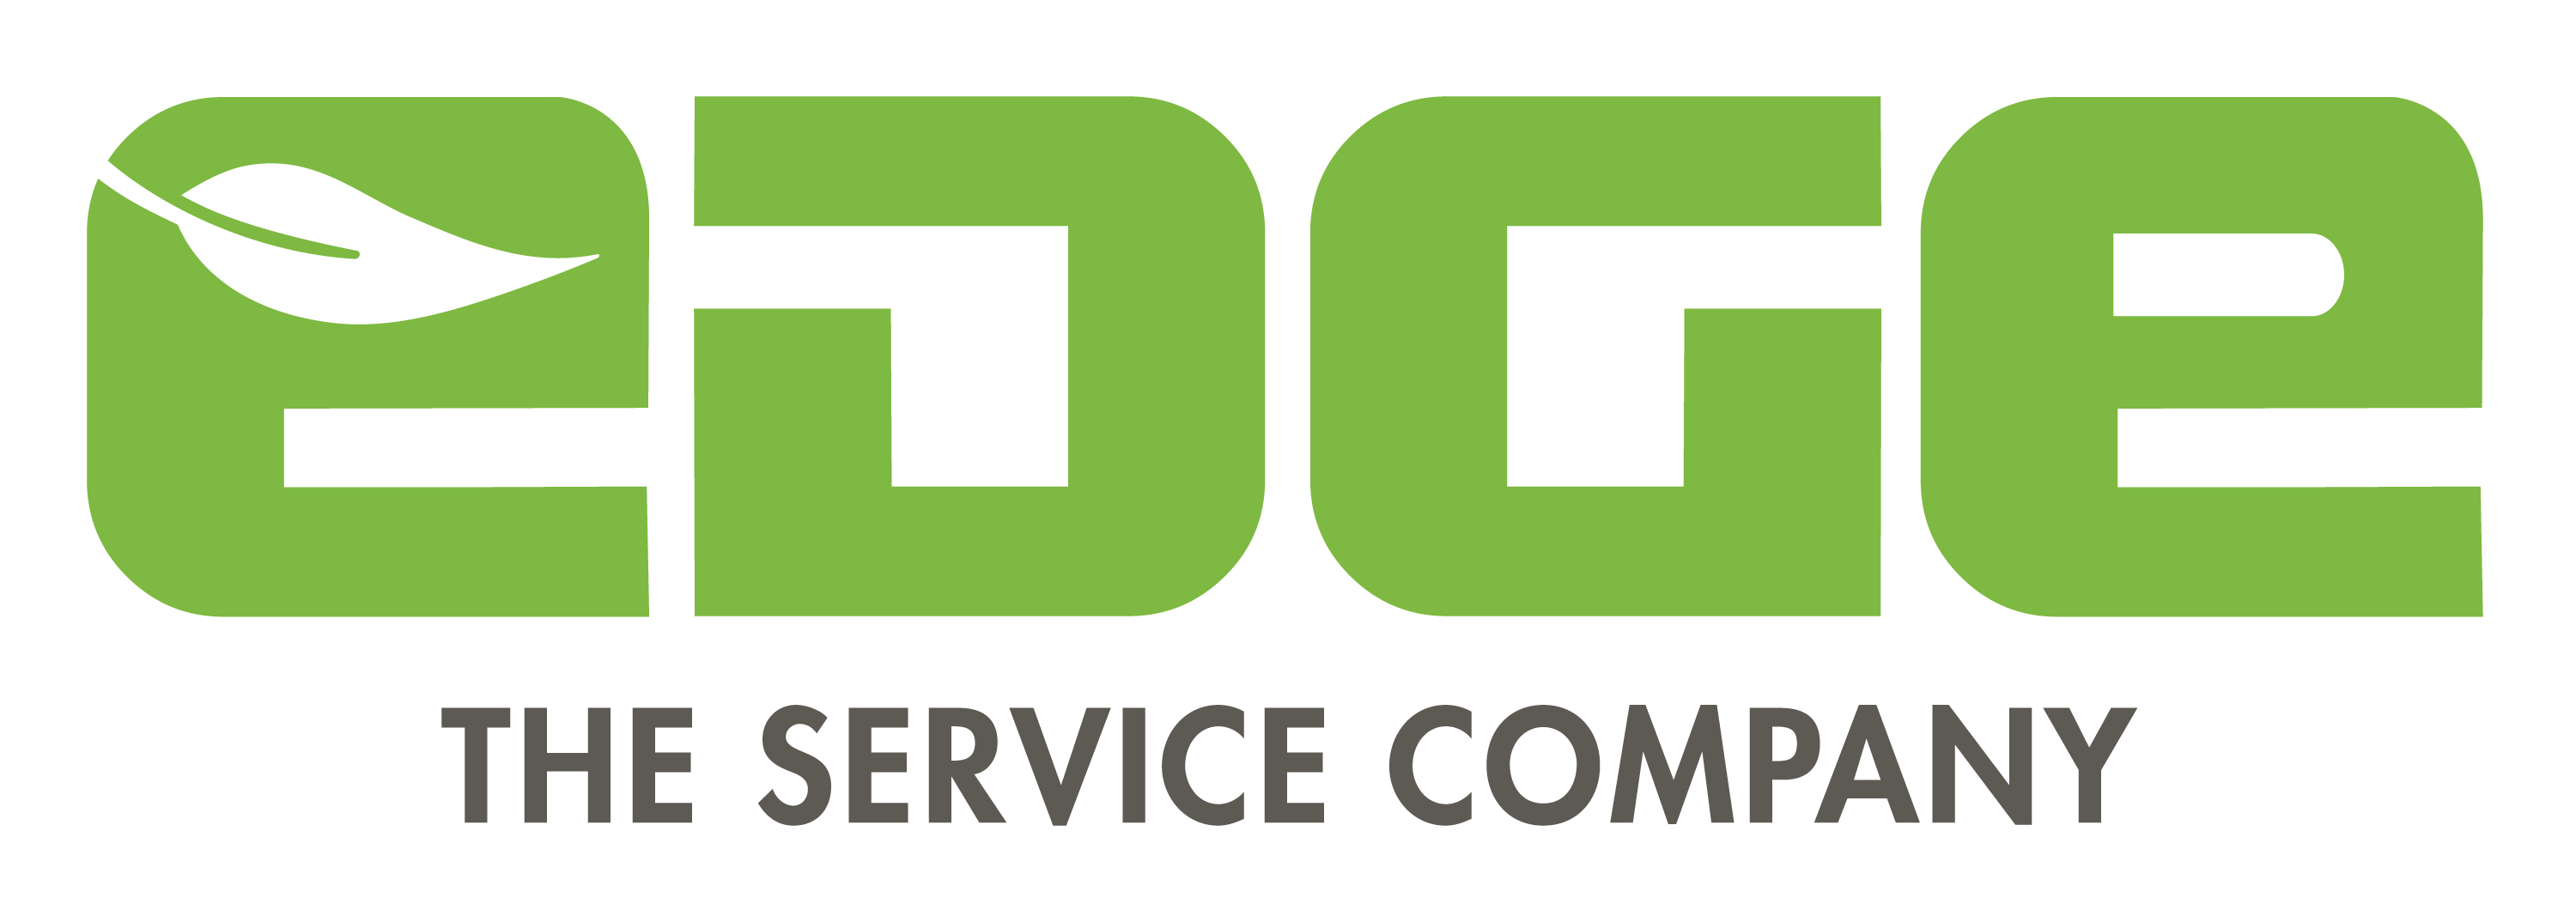 Edge reviews | Pest Control at 372 Mountain View Rd - Berthoud CO